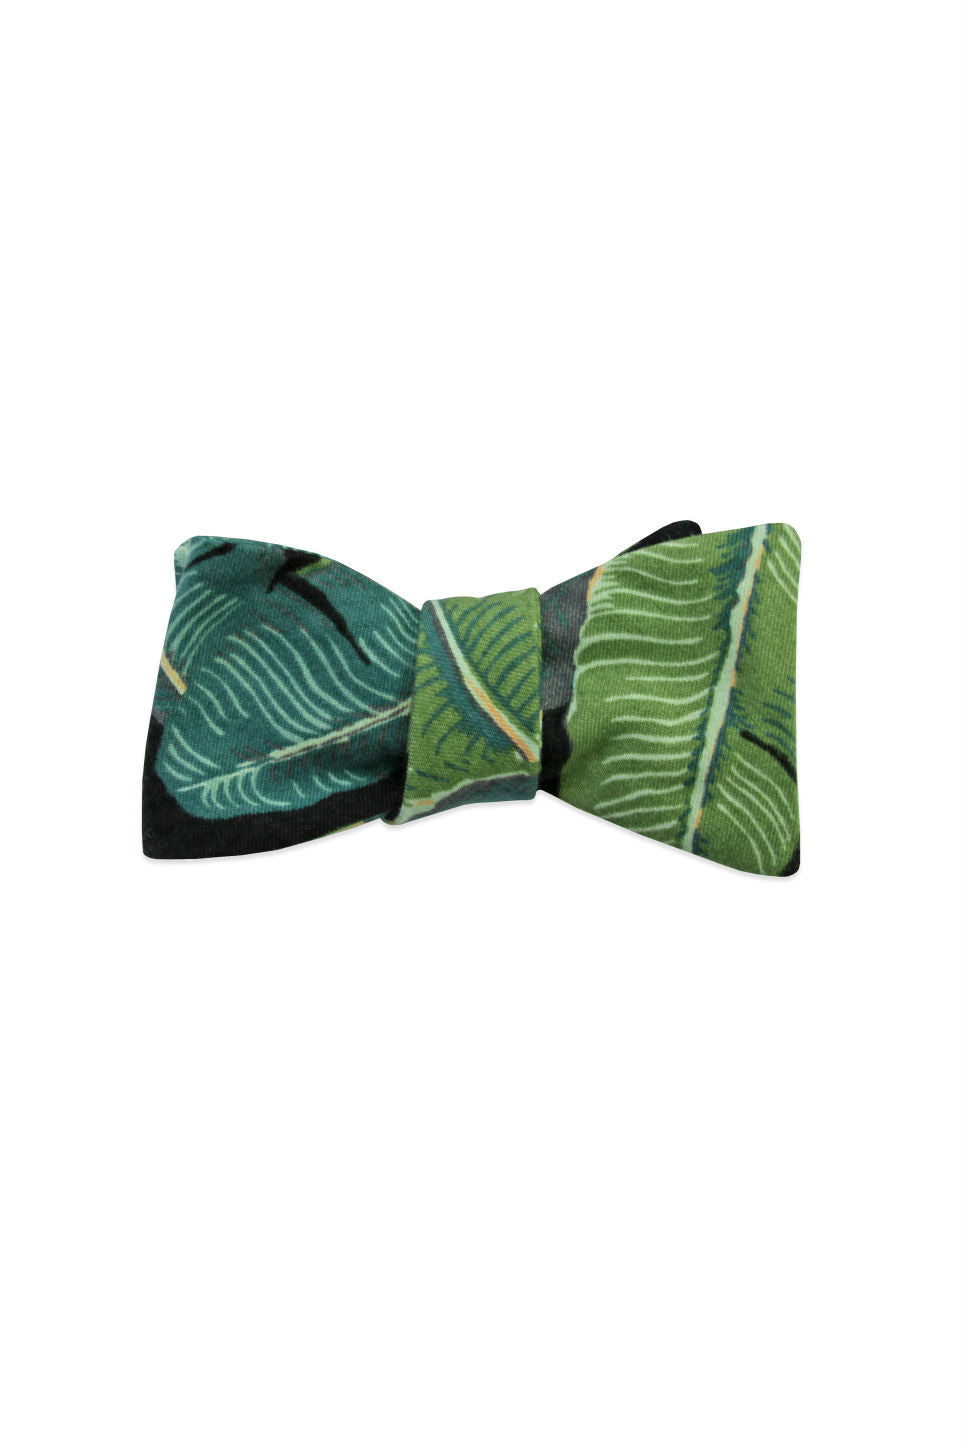 THE CAMILLE BOW TIE Tropical Print